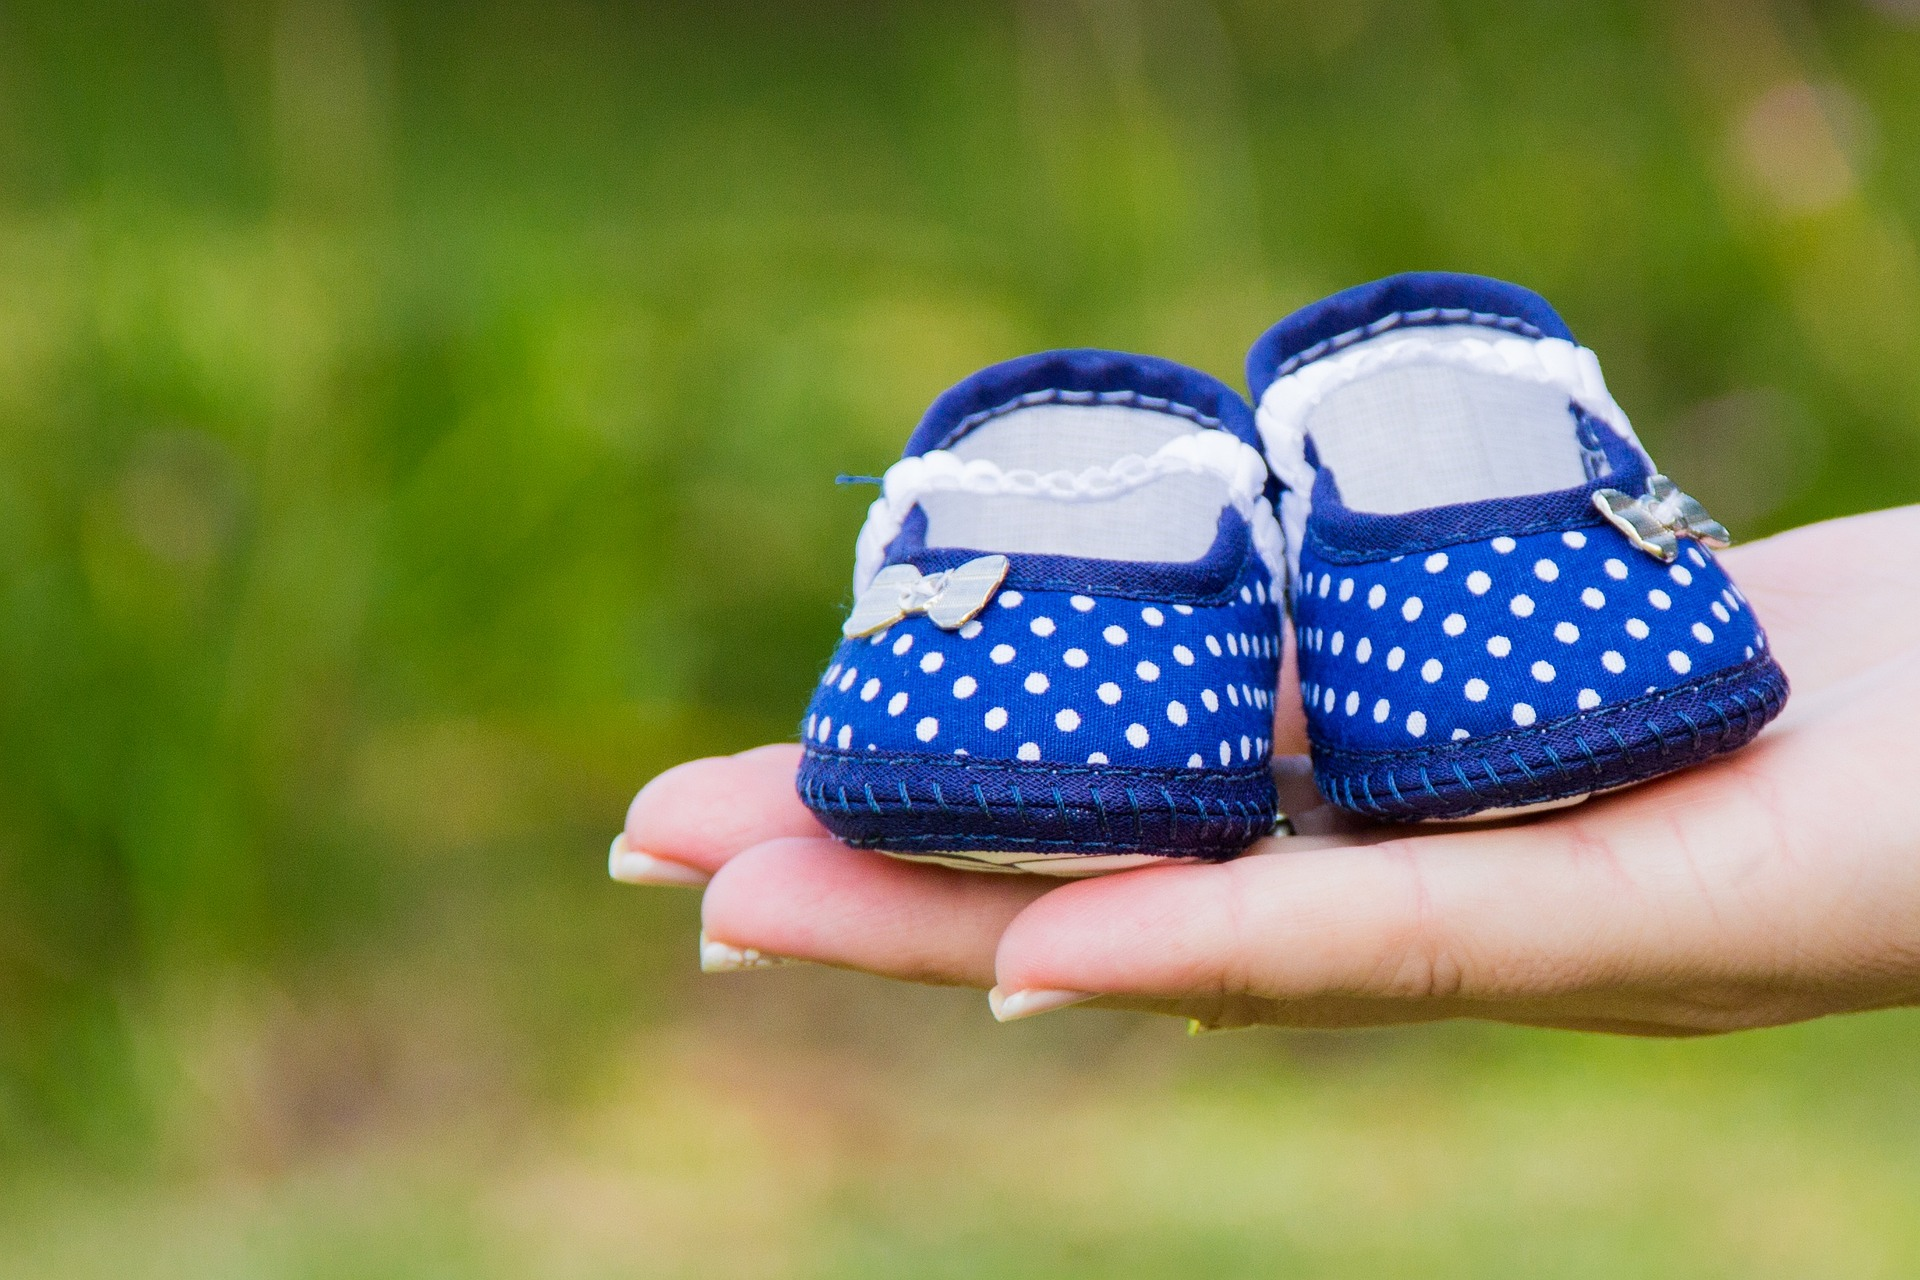 pixabay - baby slippers